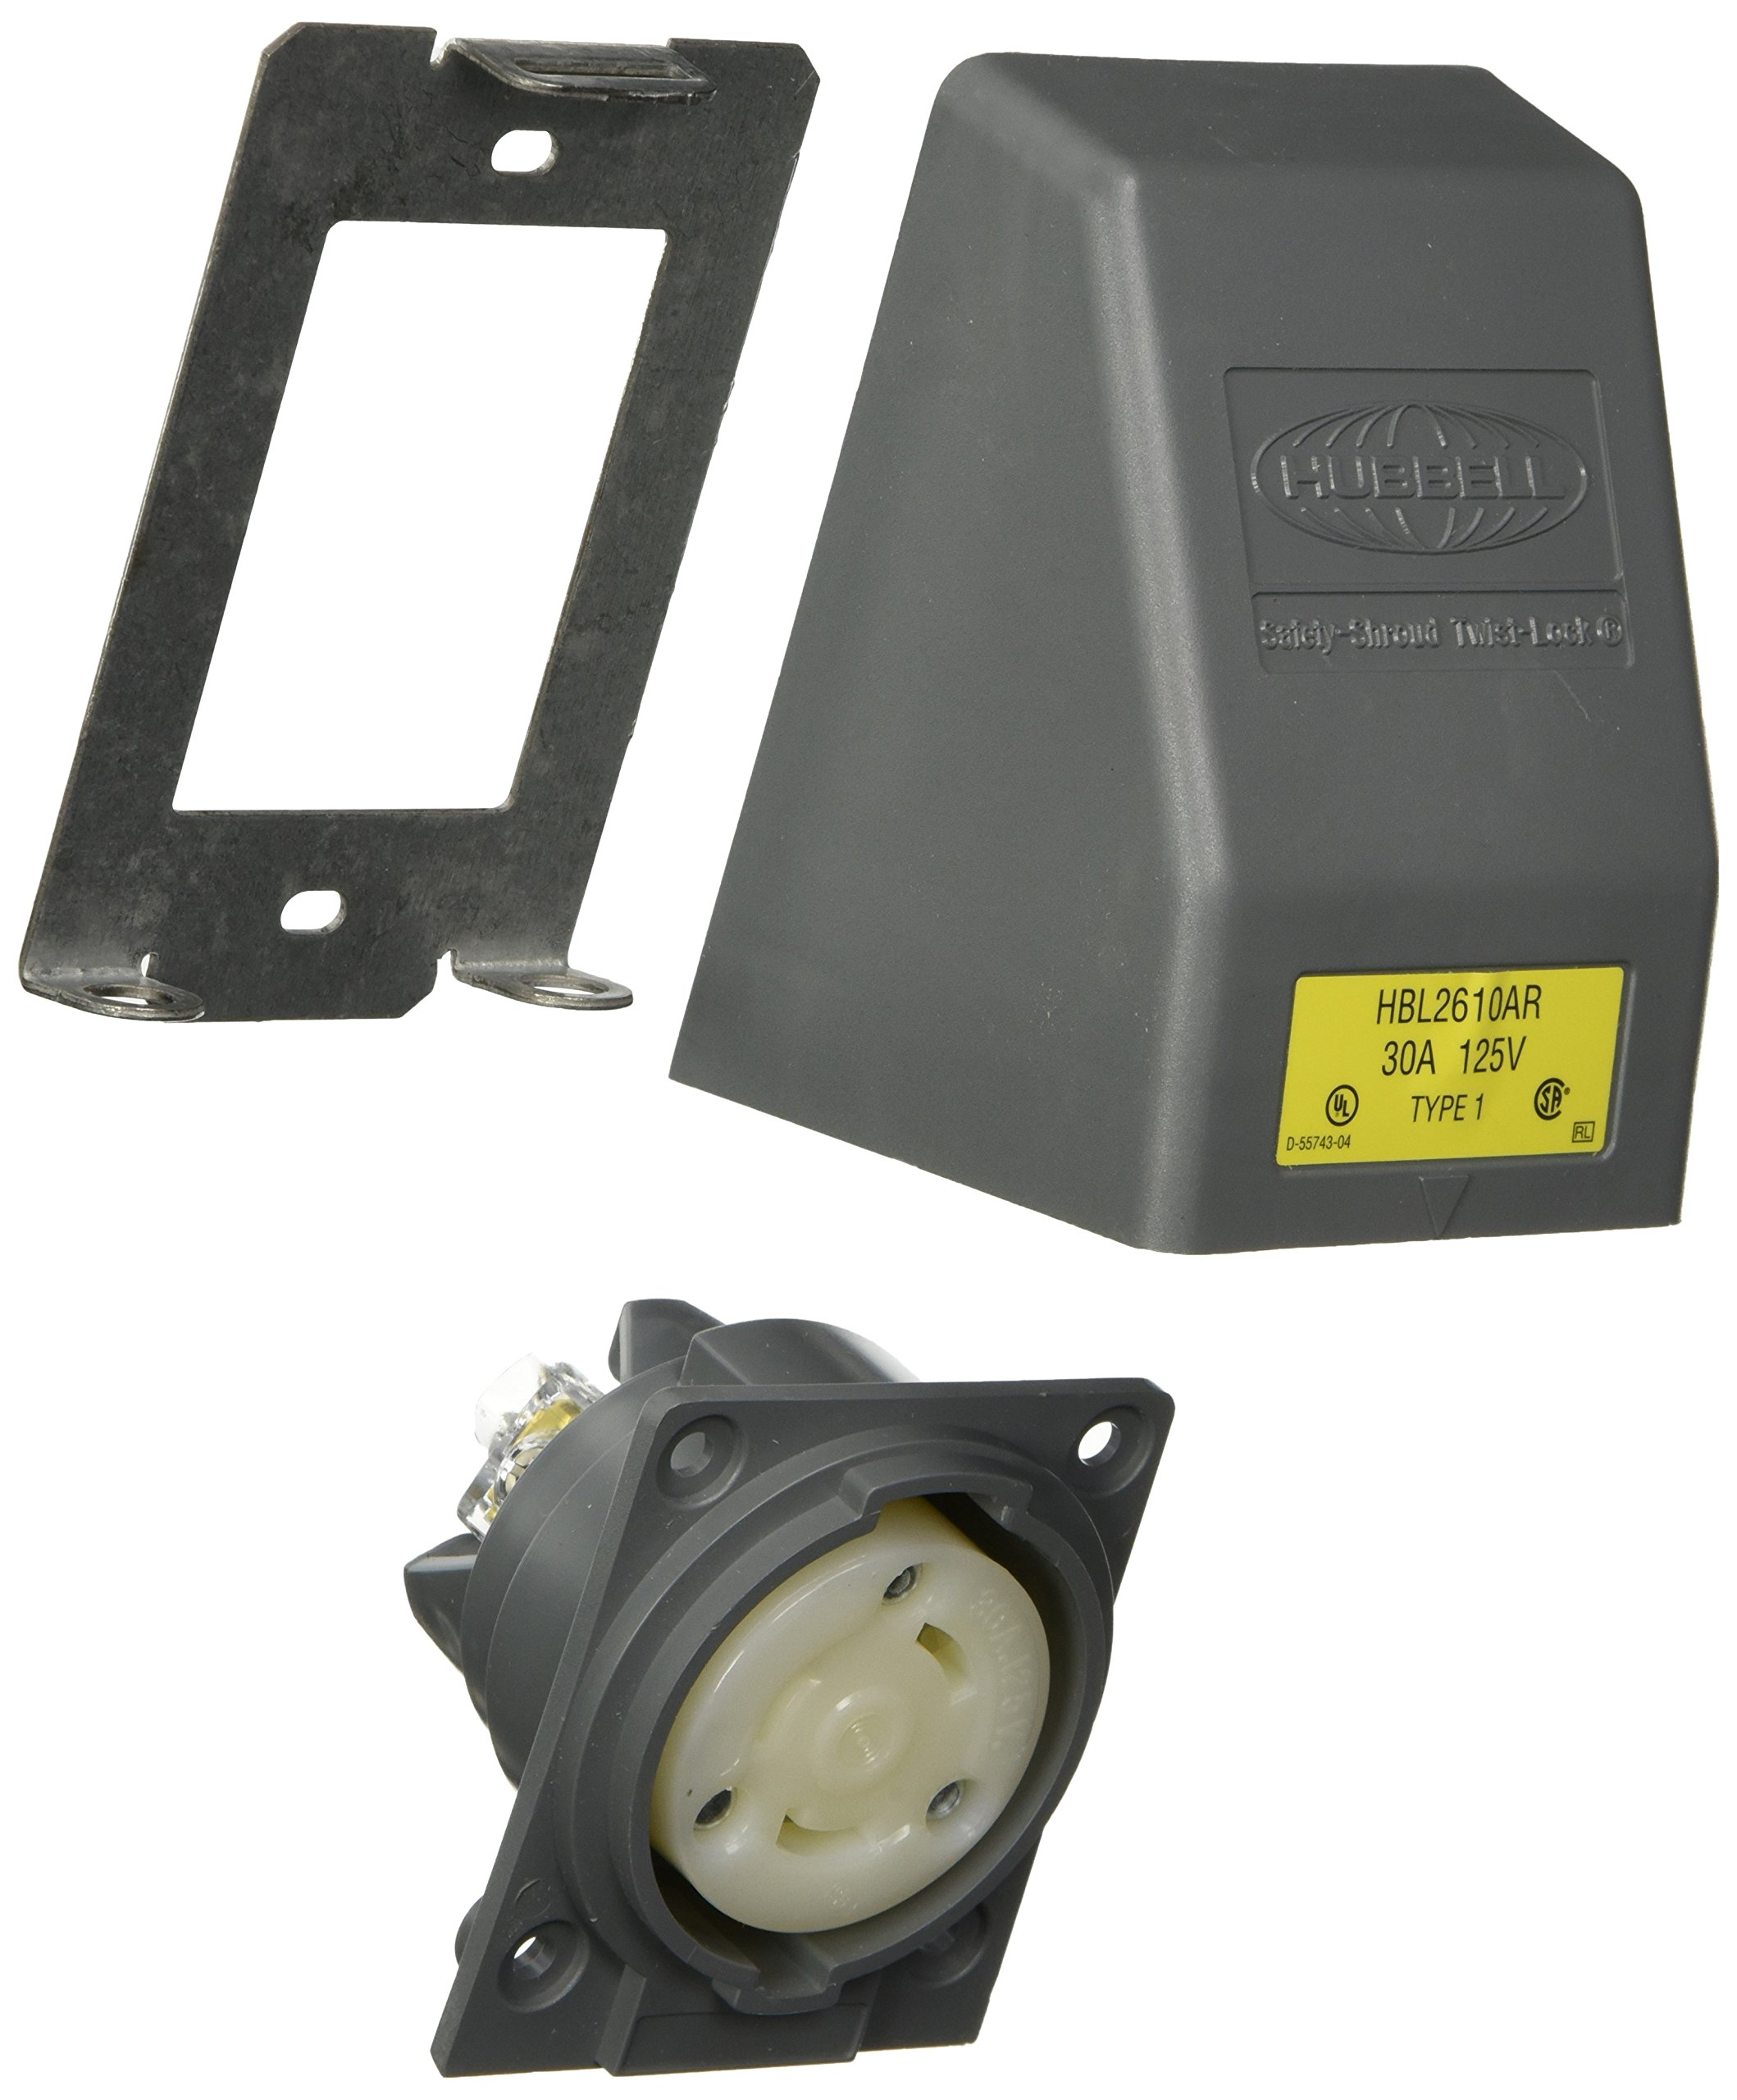 Hubbell HBL2610AR Locking Safety Shroud Receptacle, L5-30R, Angled Surface Mount, Gray